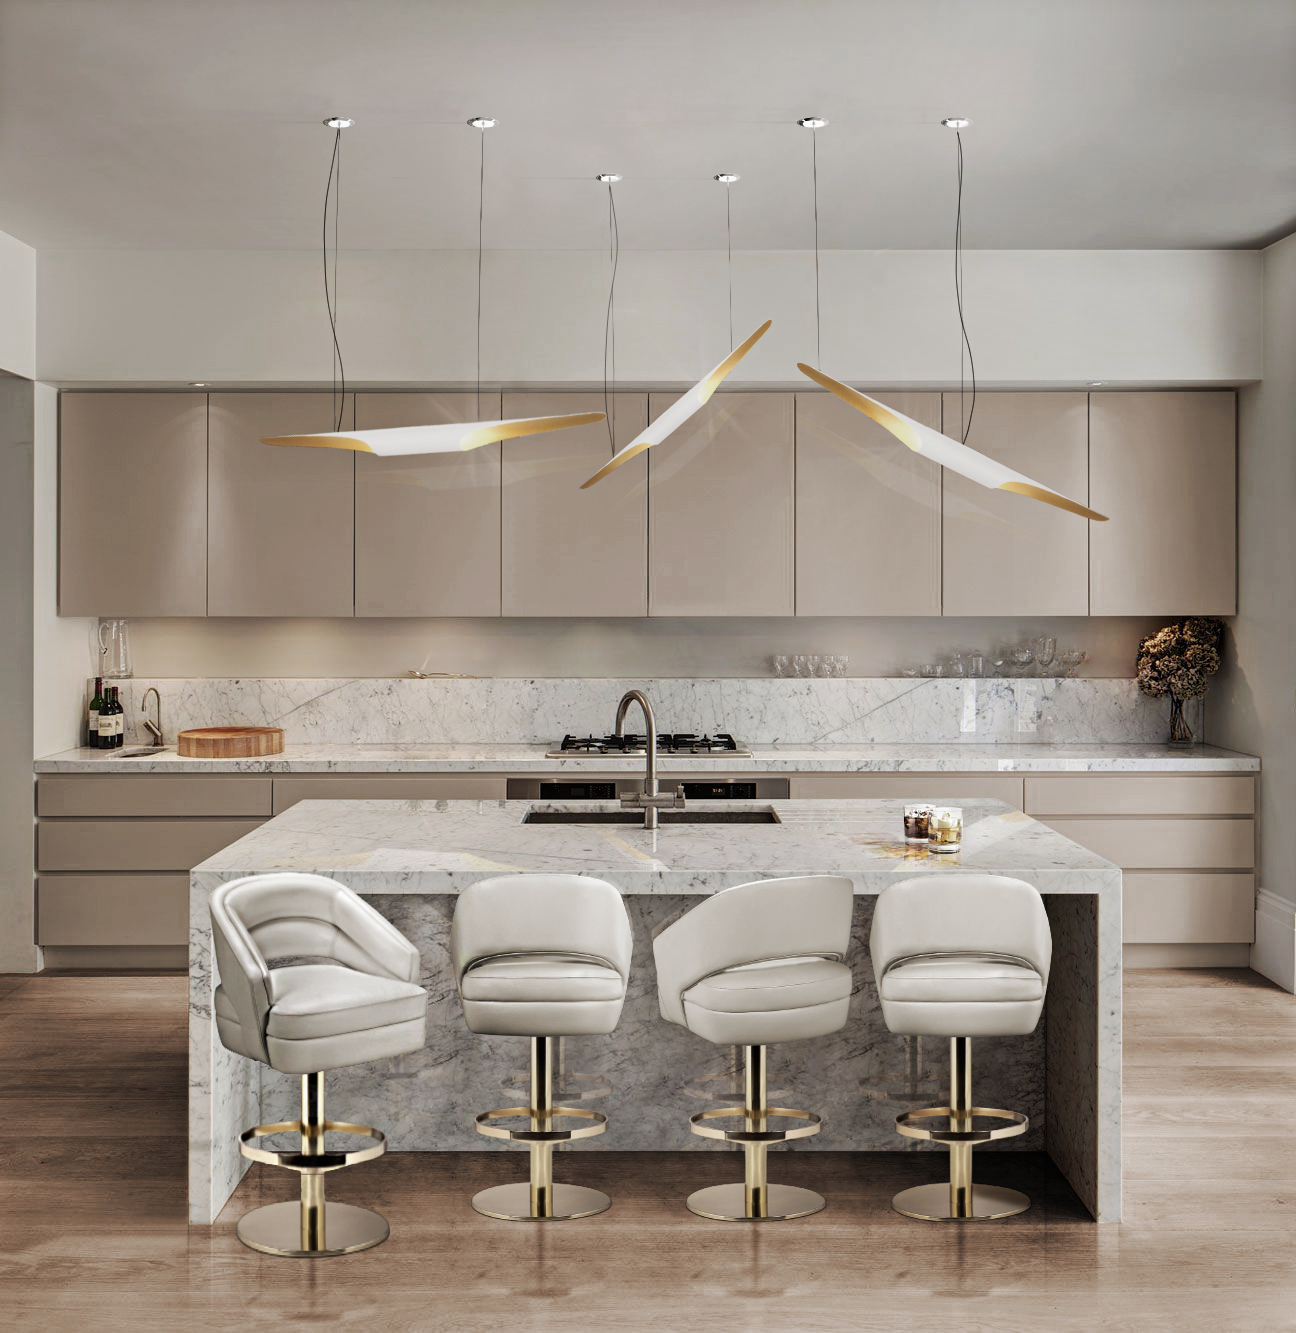 WHITE AND GOLD CLASSIC KITCHEN DESIGN